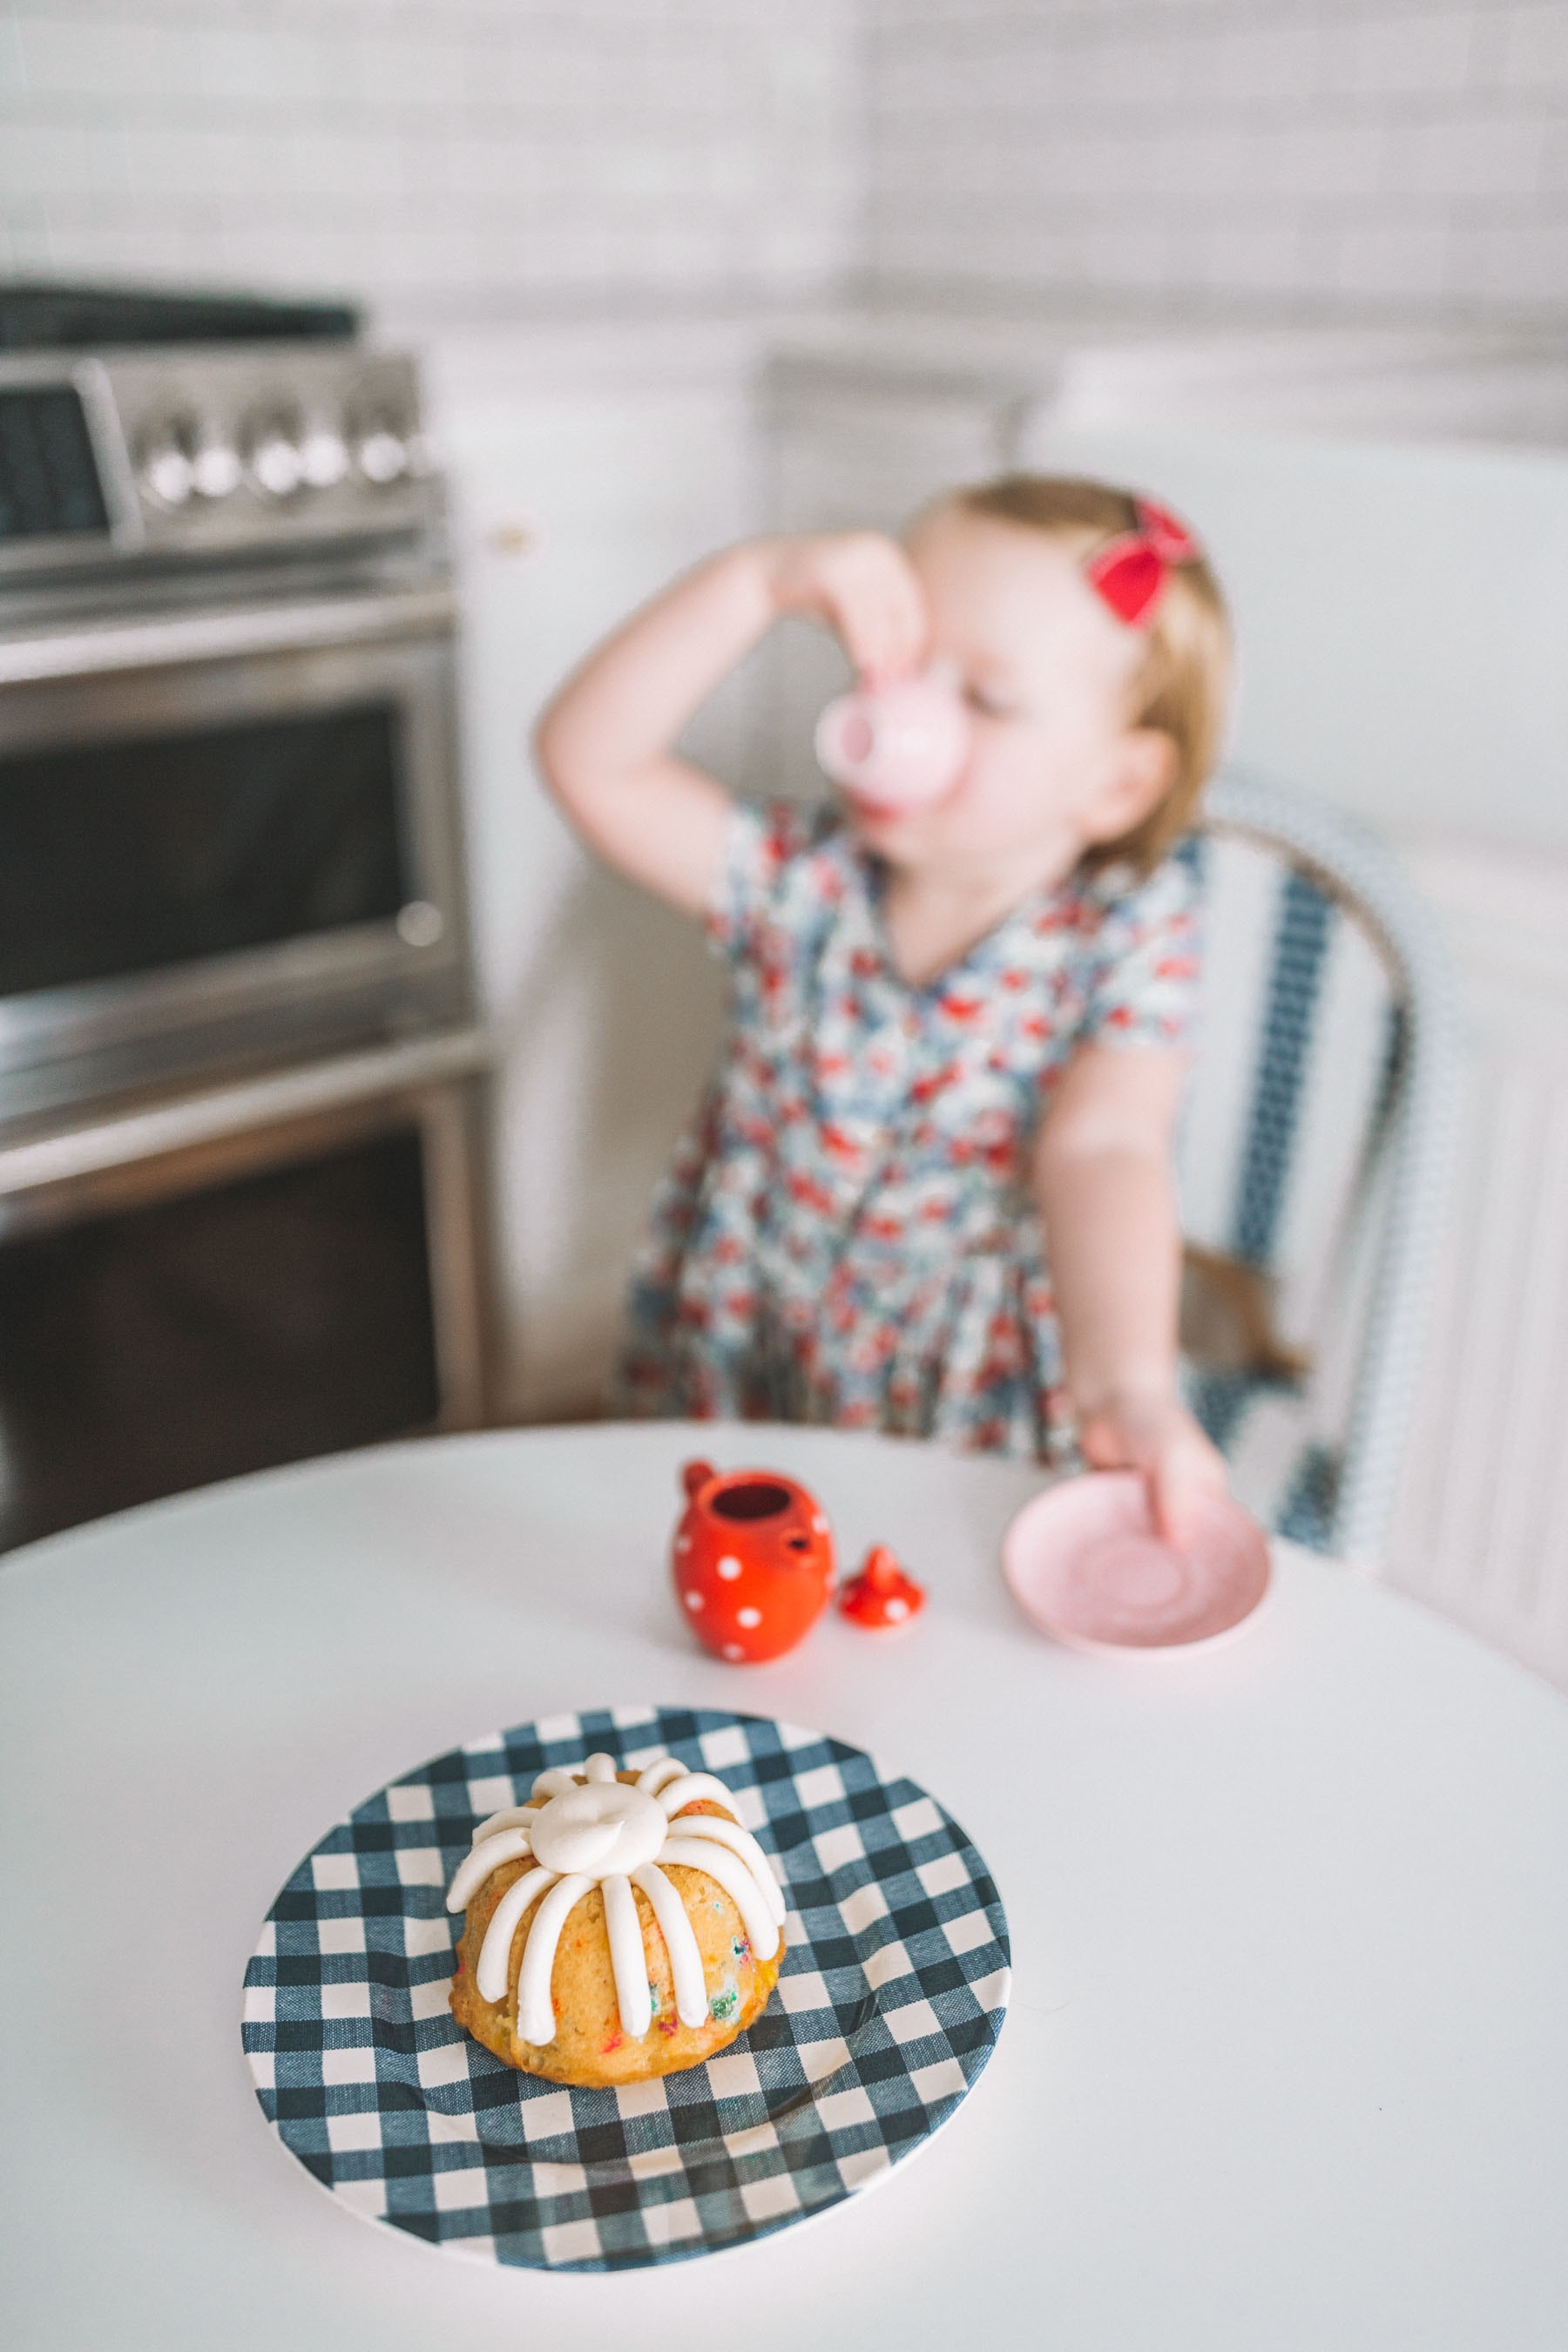 Bundt cake and gingham plate